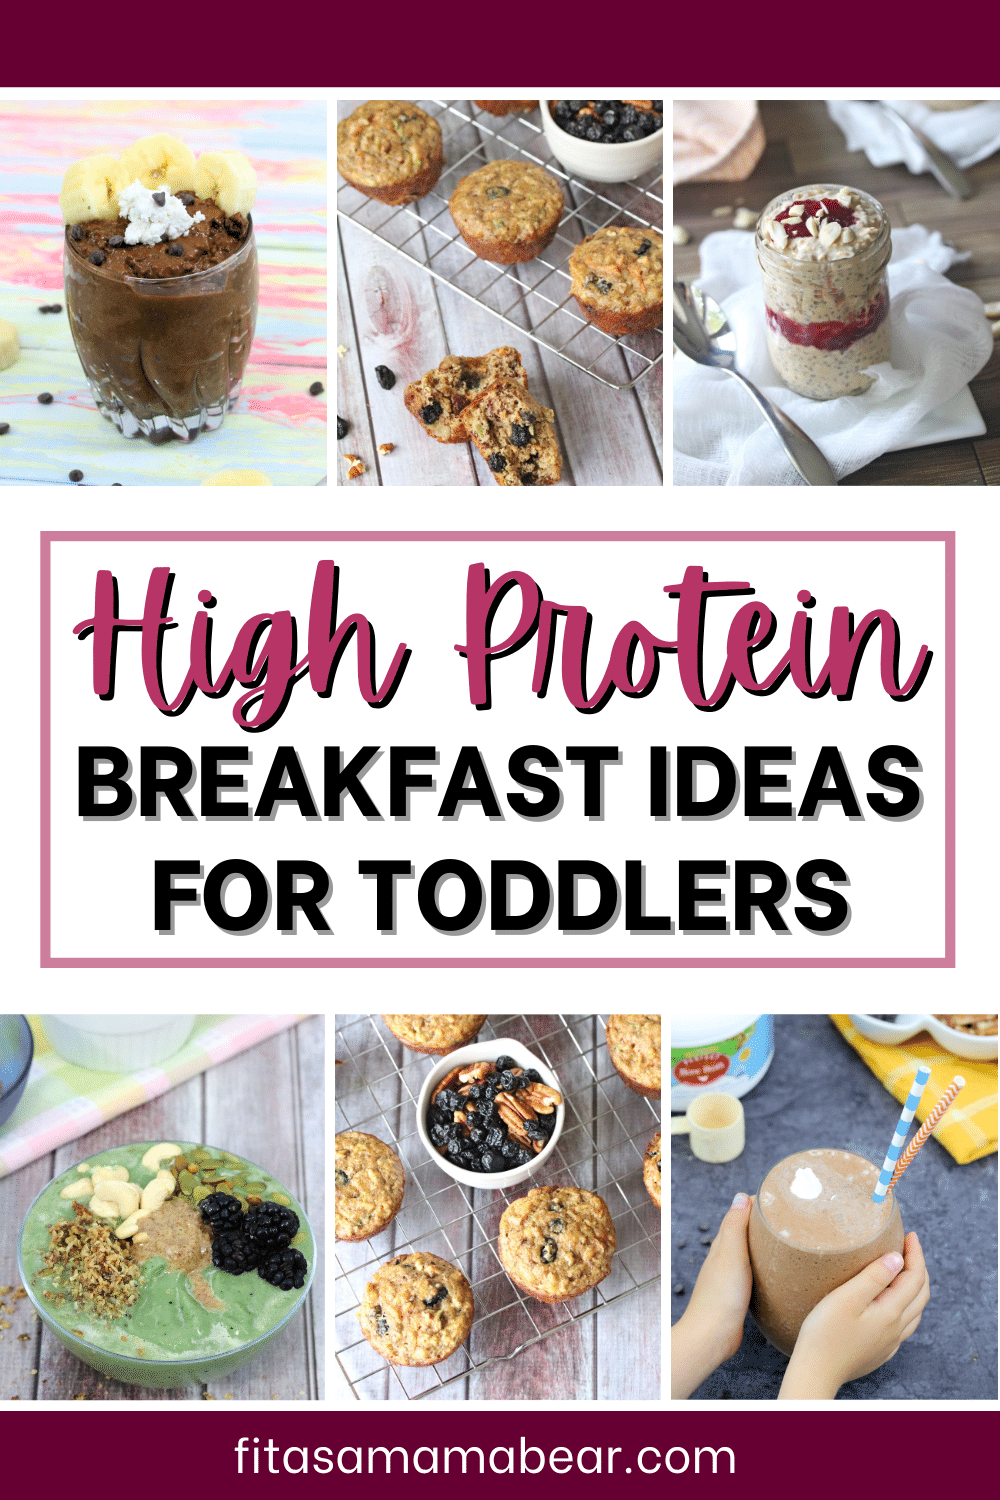 Pinterest image with text: 6 images of breakfast ideas that are healthy and for toddlers